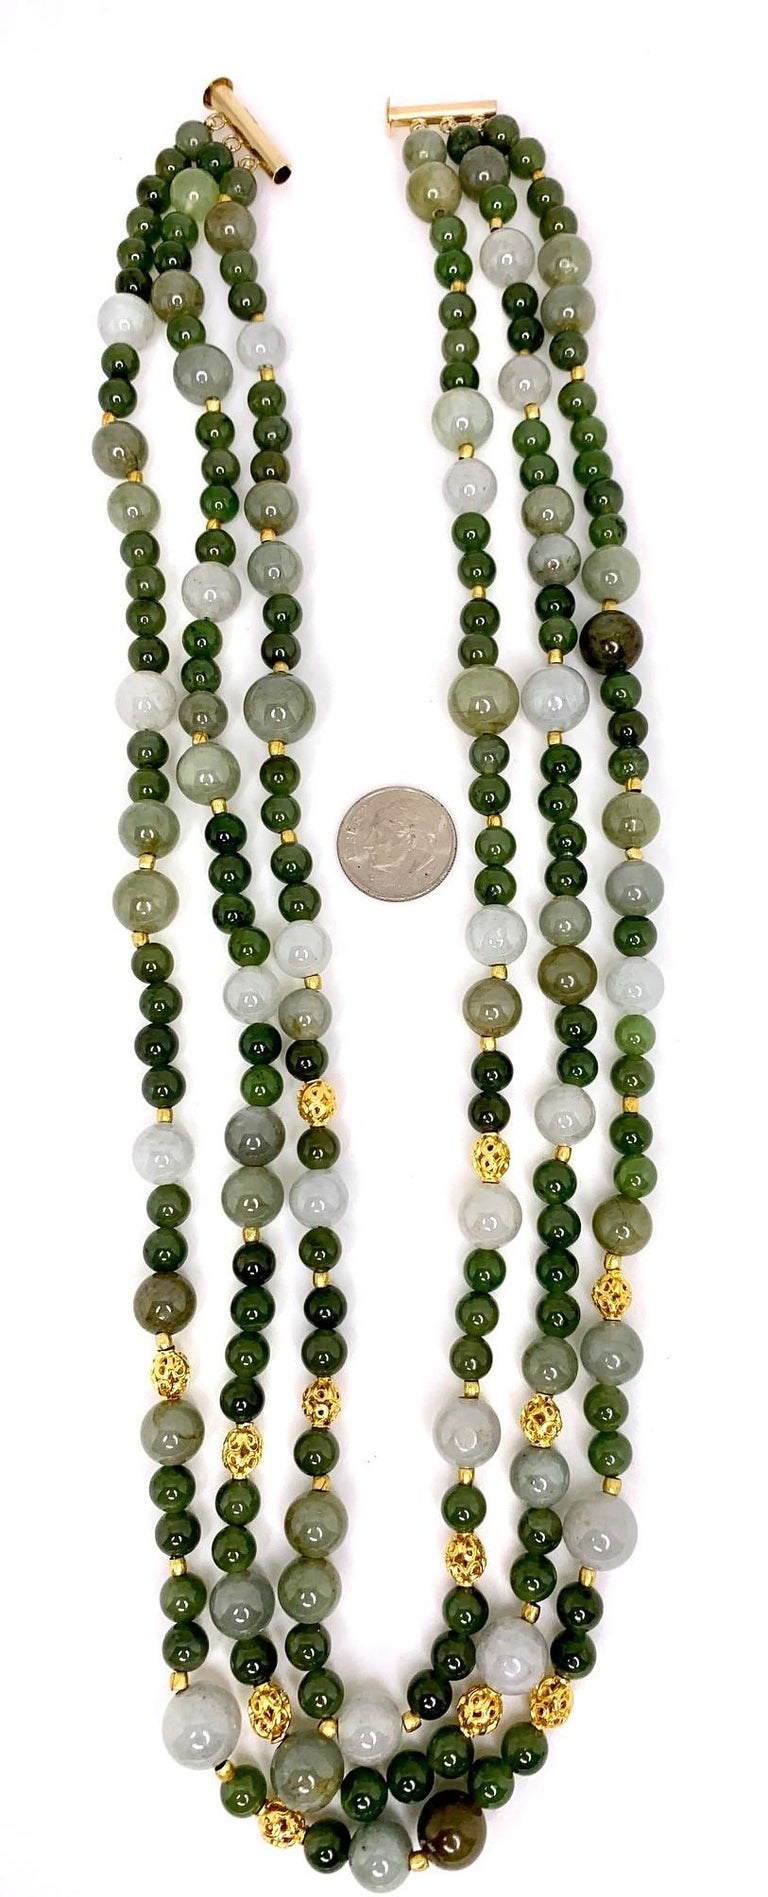 This impressive necklace features three strands of jade beads in varying shades of earth tones, green and silver. The beads have been hand-strung with 18k and 22k yellow gold beads and spacers. The shortest of the strands measures 17